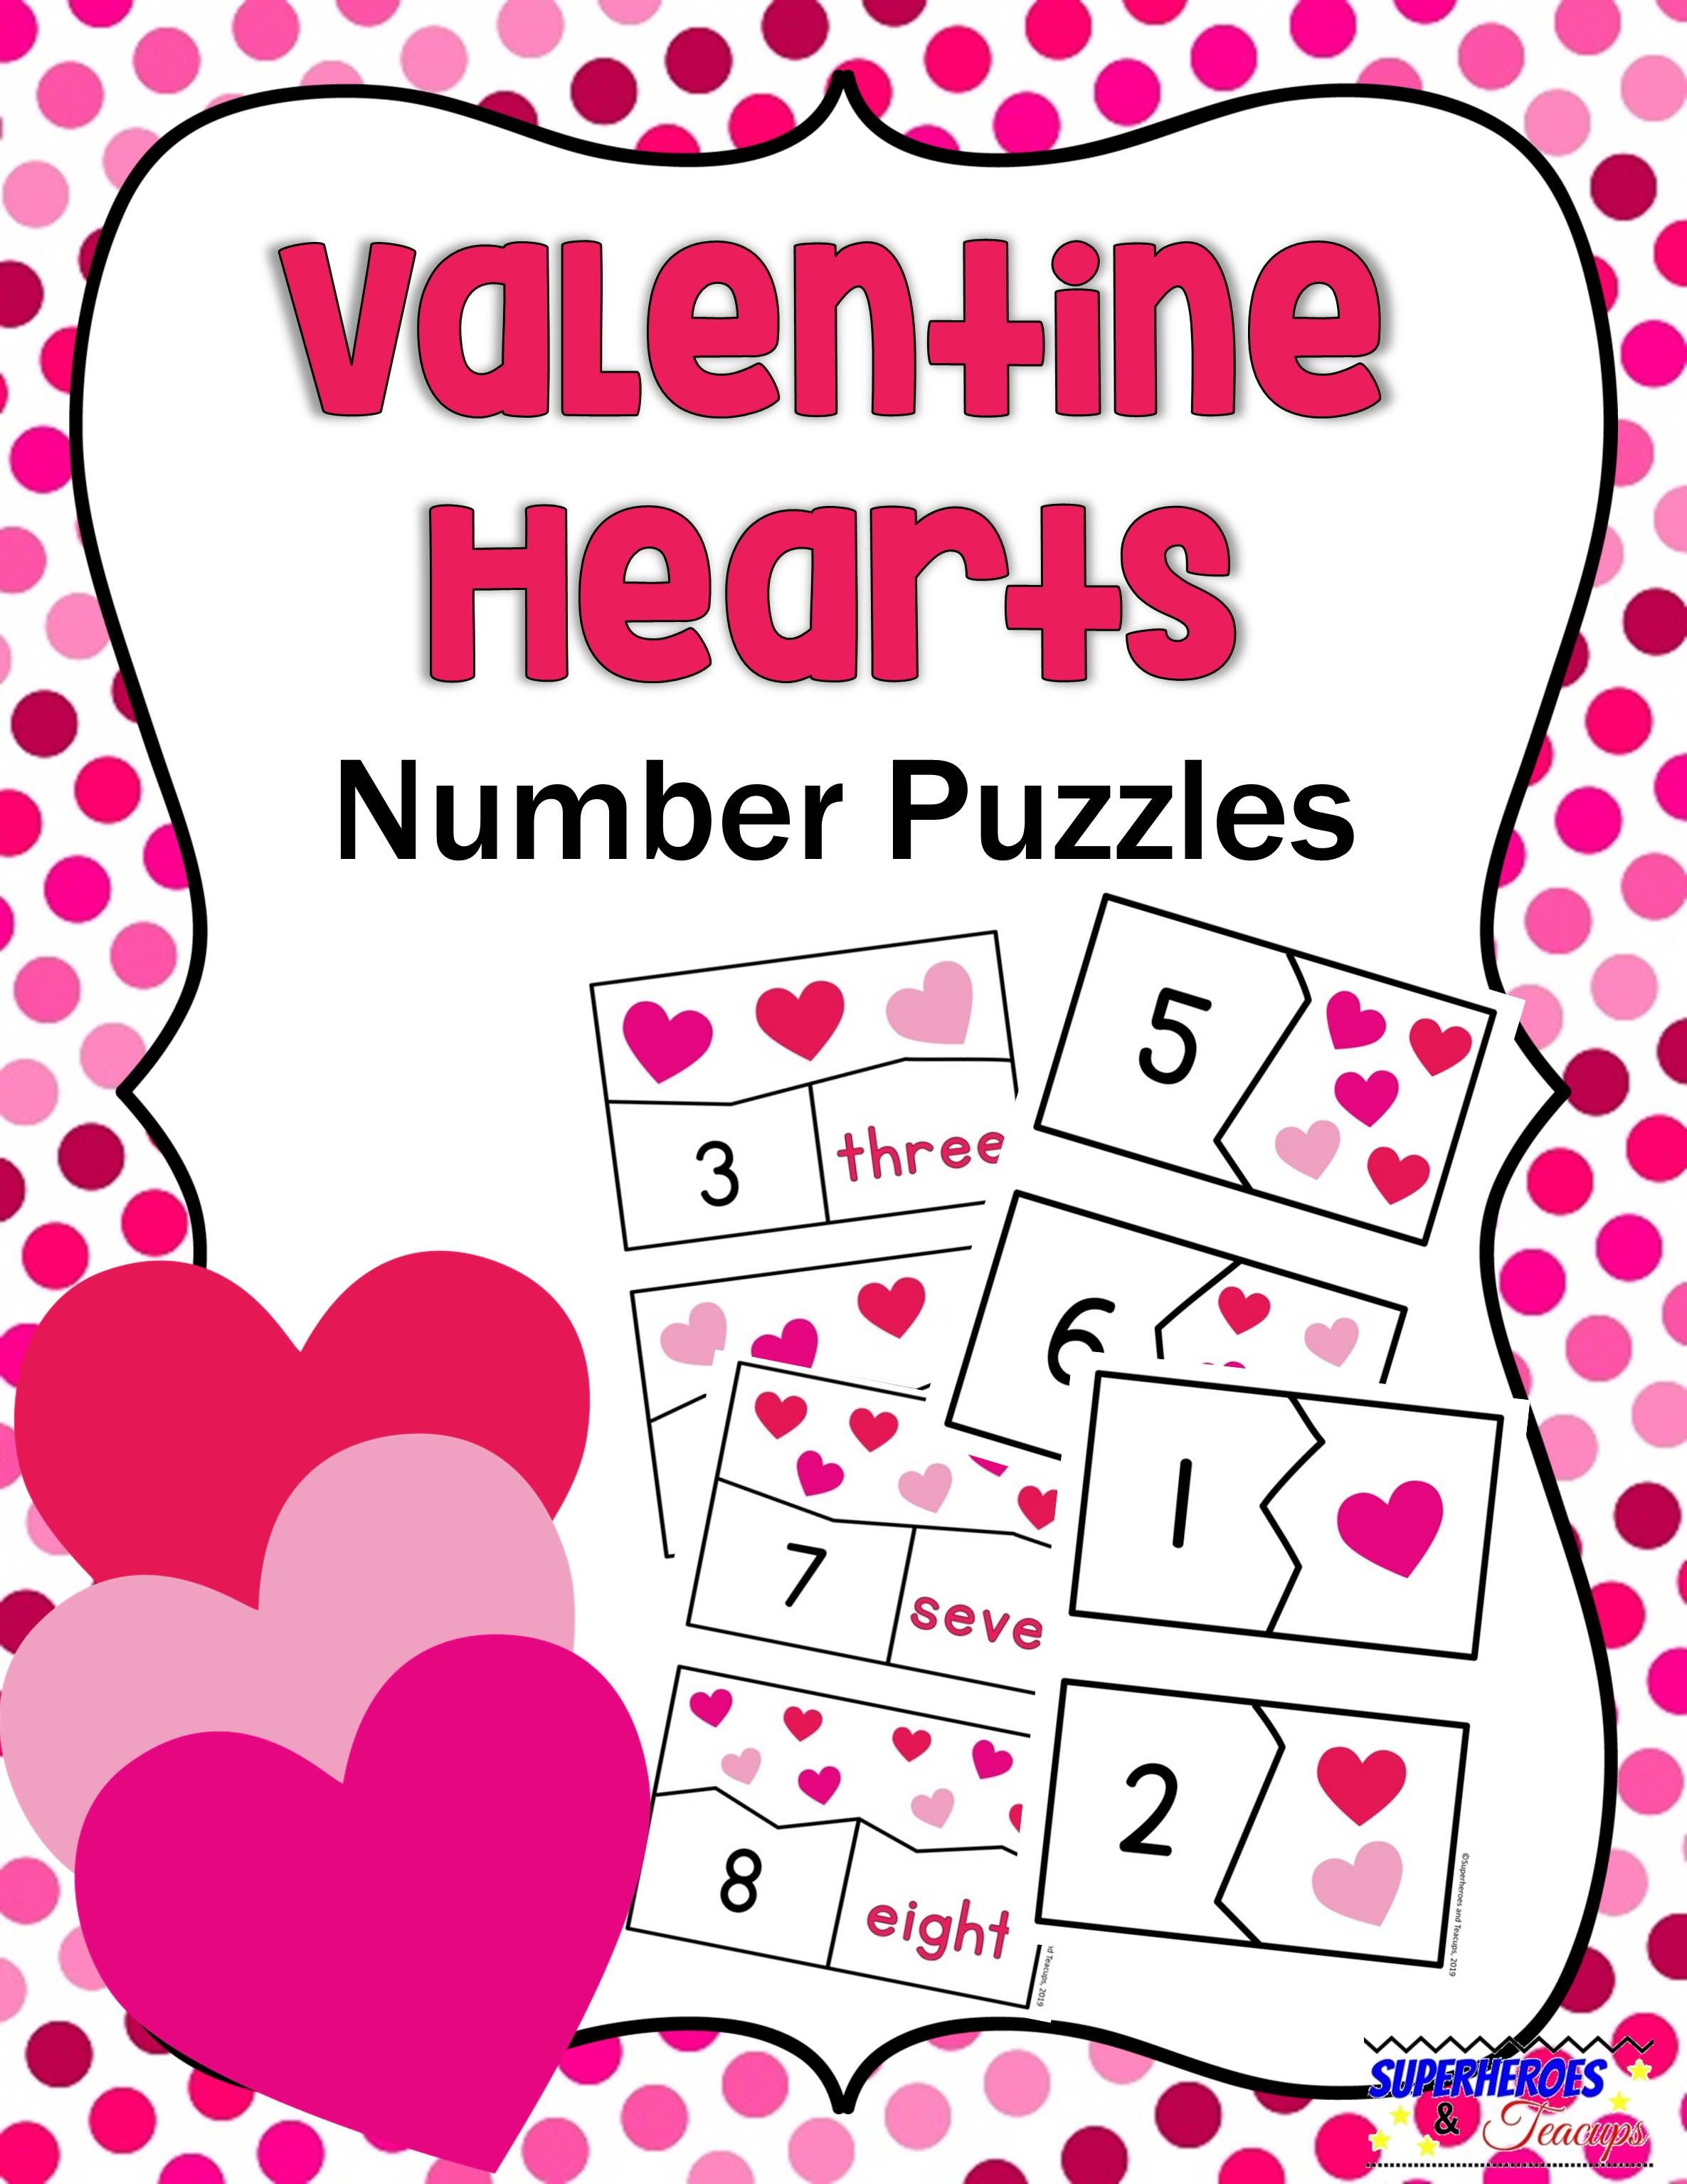 Valentine Hearts Number Puzzles Free Printable | Superheroes And - Printable Heart Puzzles